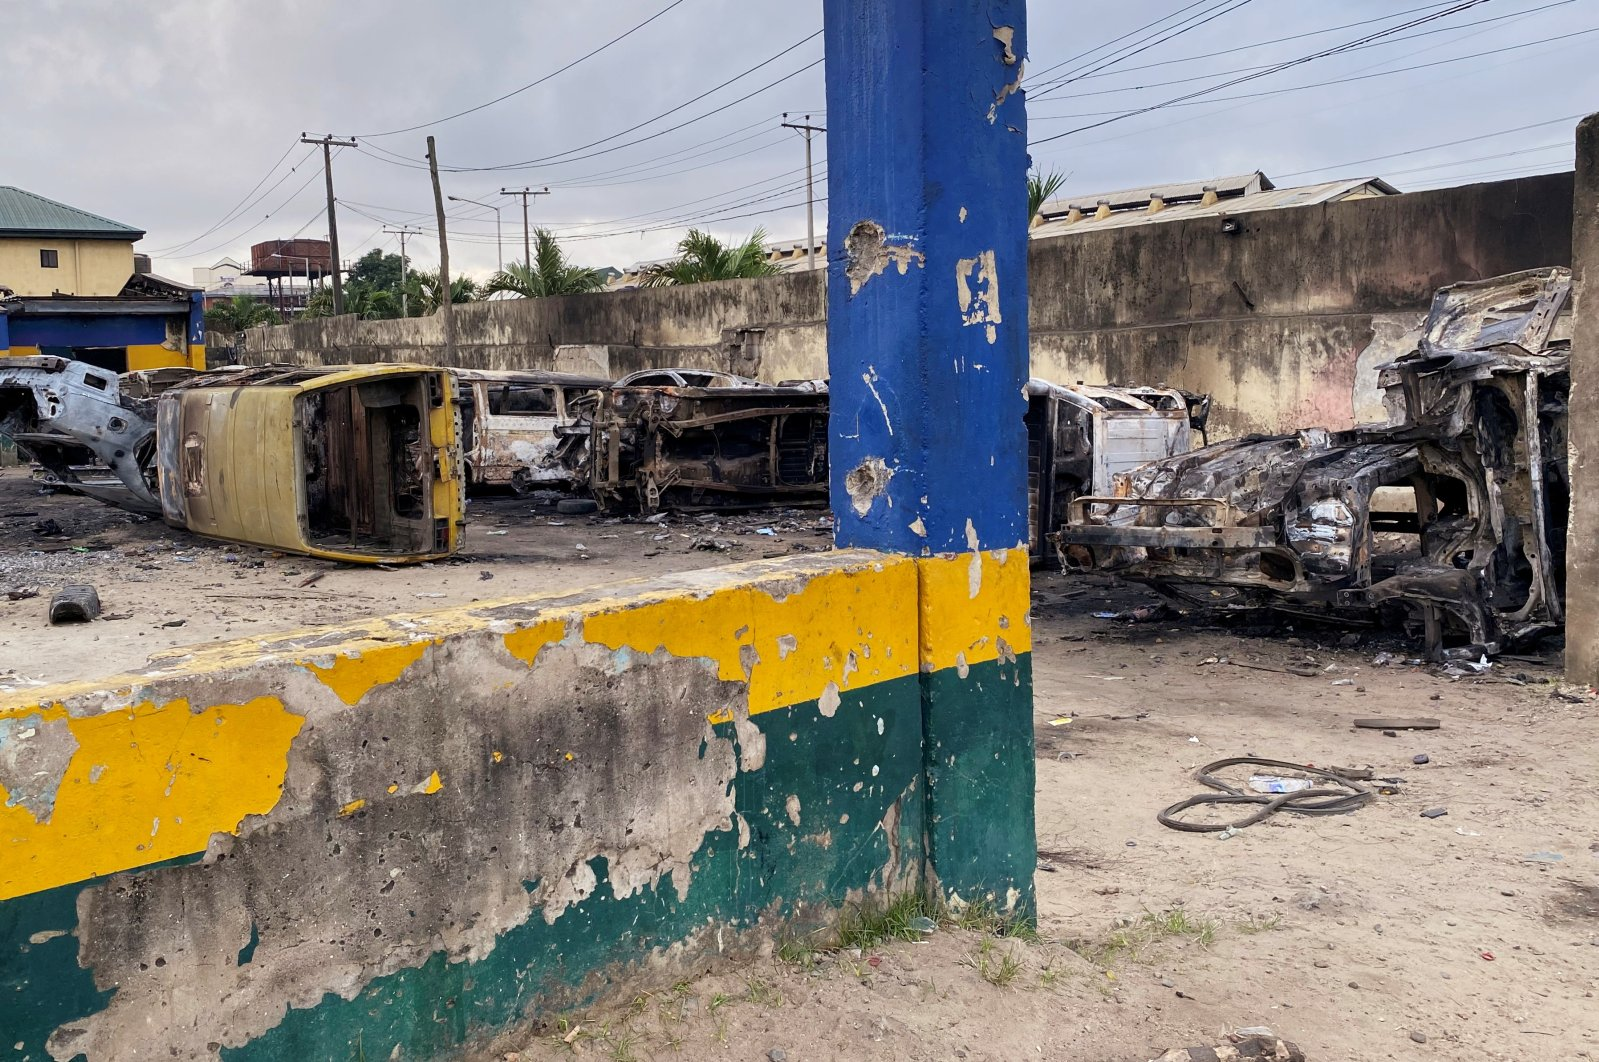 Burnt vehicles are pictured at a damaged police station, Lagos, Nigeria, Oct. 23, 2020. (REUTERS Photo)